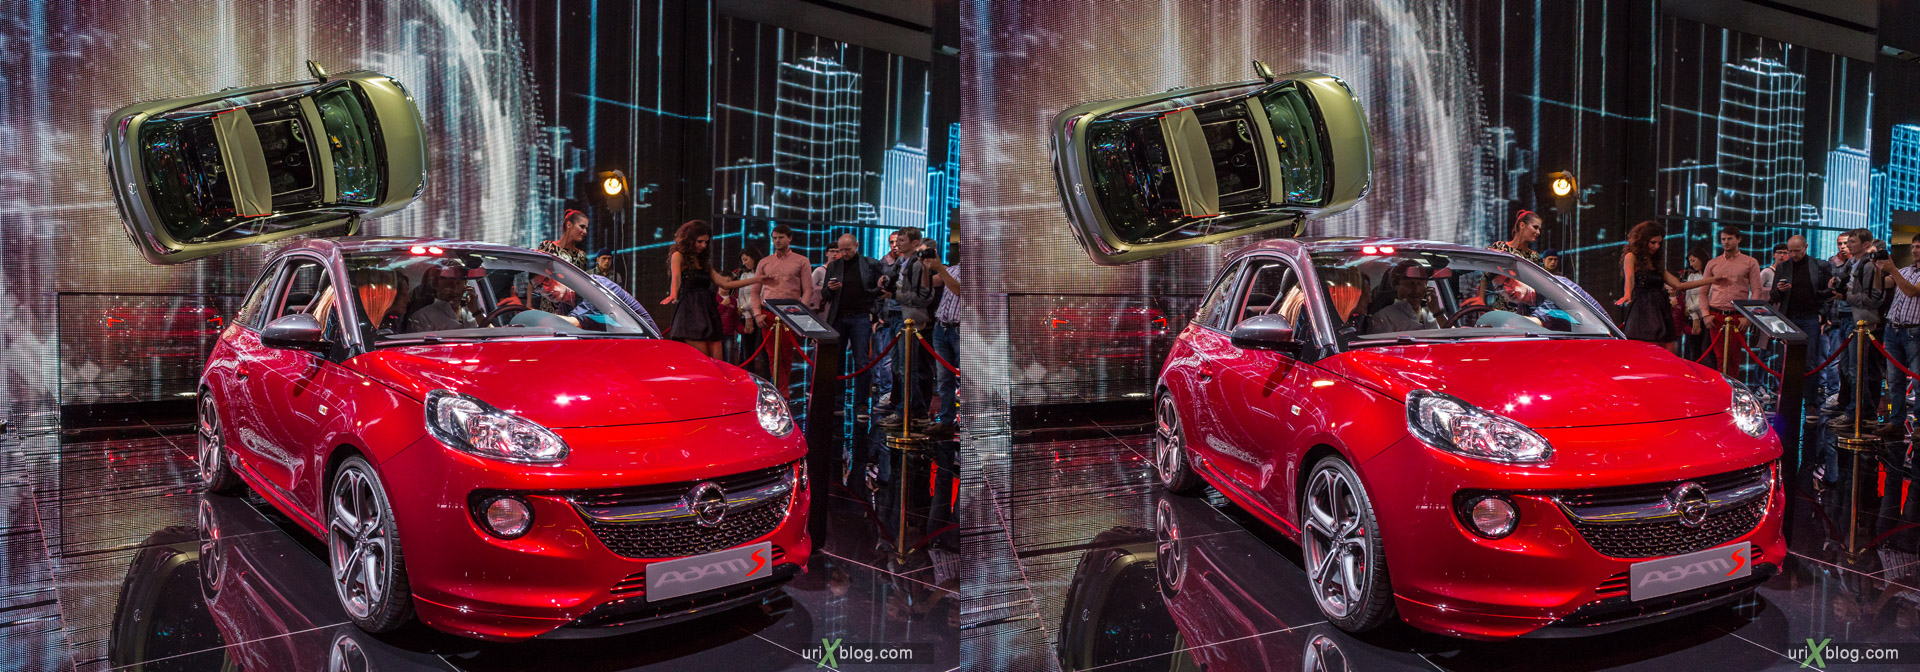 2014, Opel Adam, Moscow International Automobile Salon, MIAS, Crocus Expo, Moscow, Russia, augest, 3D, stereo pair, cross-eyed, crossview, cross view stereo pair, stereoscopic